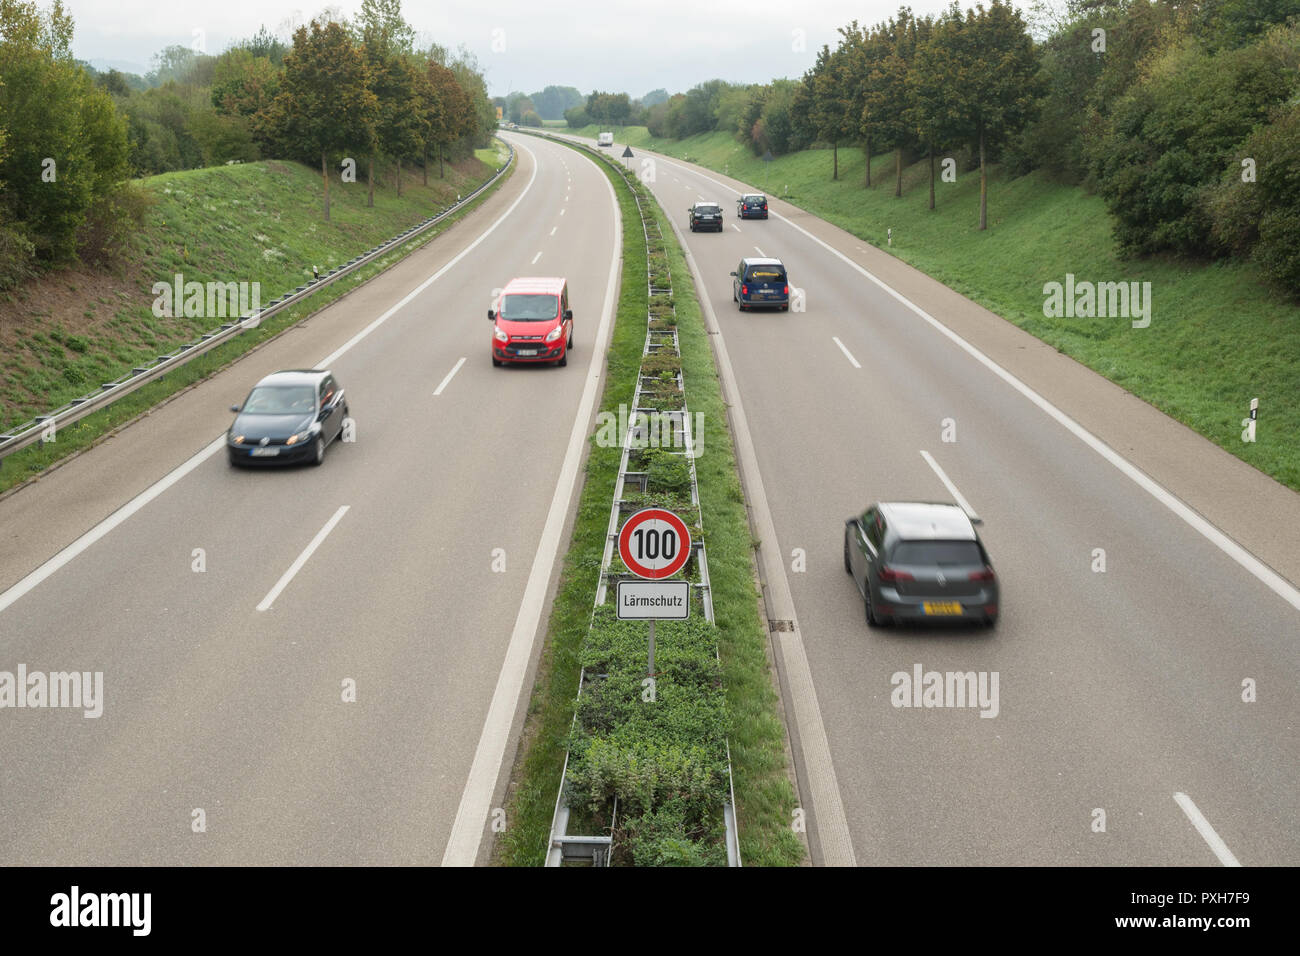 Réduction du bruit du trafic routier - réduction de la limite de vitesse sur autoroute allemande à réduire la pollution par le bruit - Freiburg, Germany, Europe Photo Stock